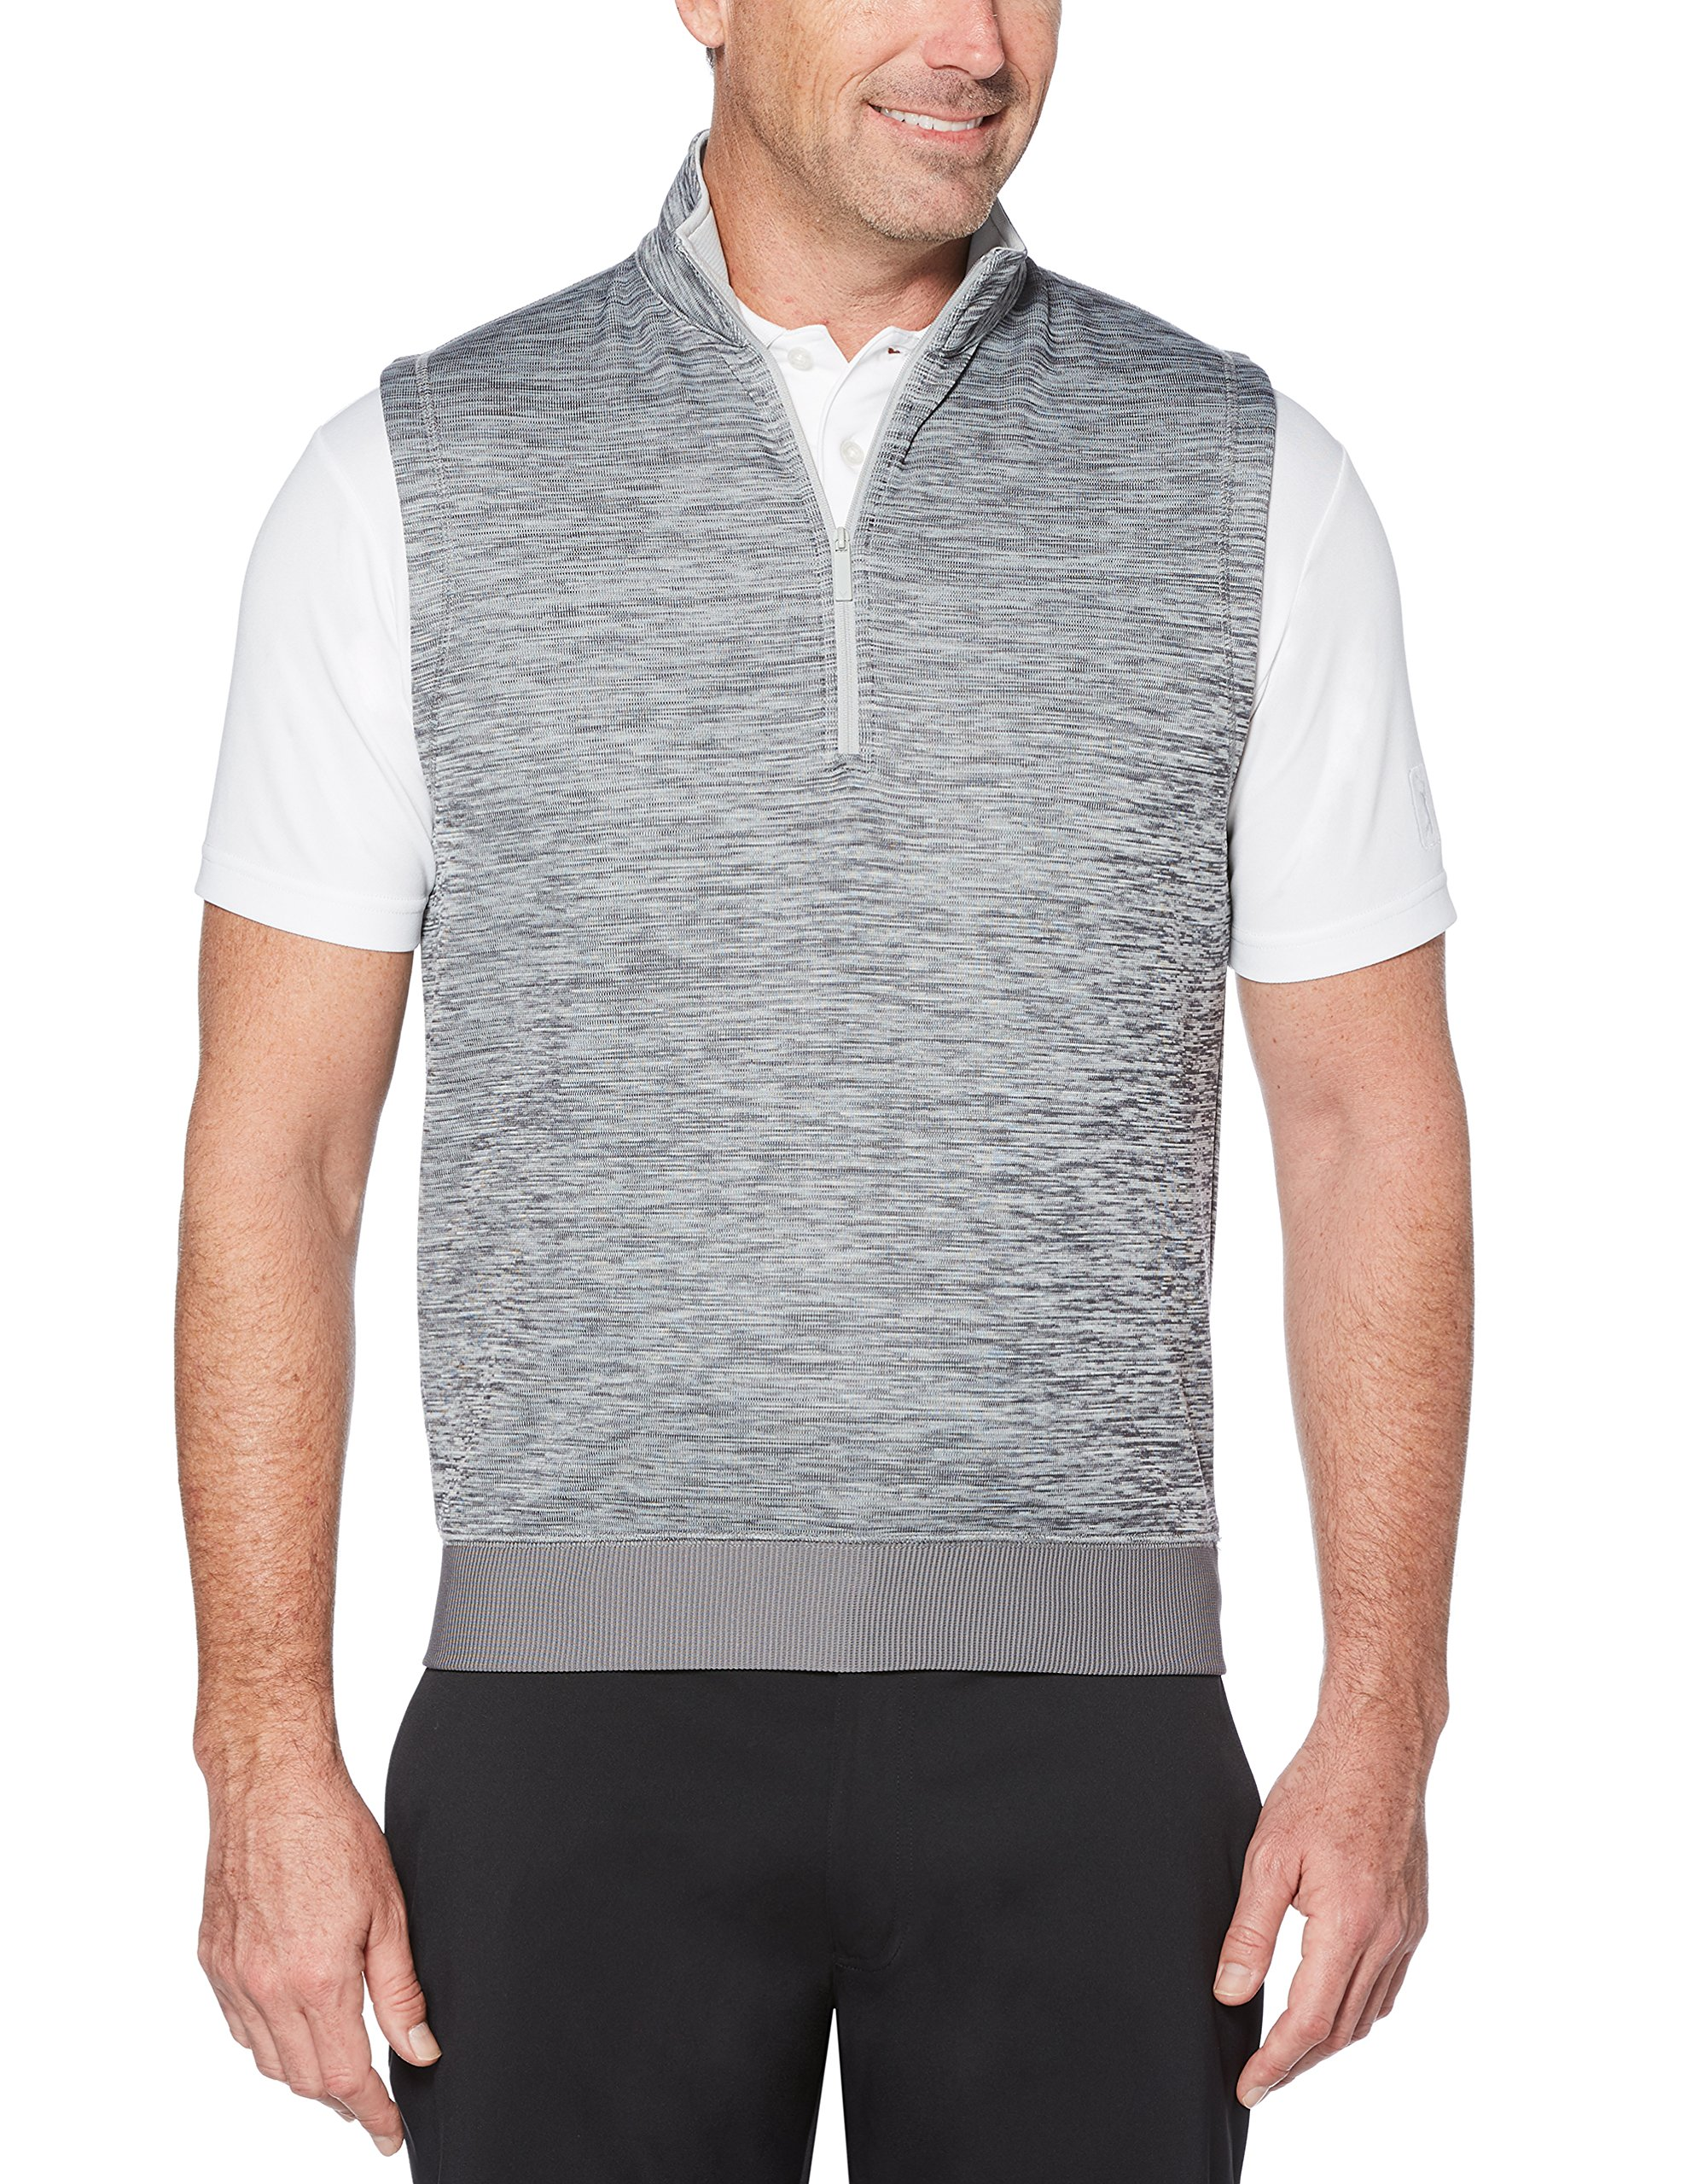 Callaway Men's Water Repellent 1/4 Zip Golf Vest, Medium Grey Heather, Medium by Callaway